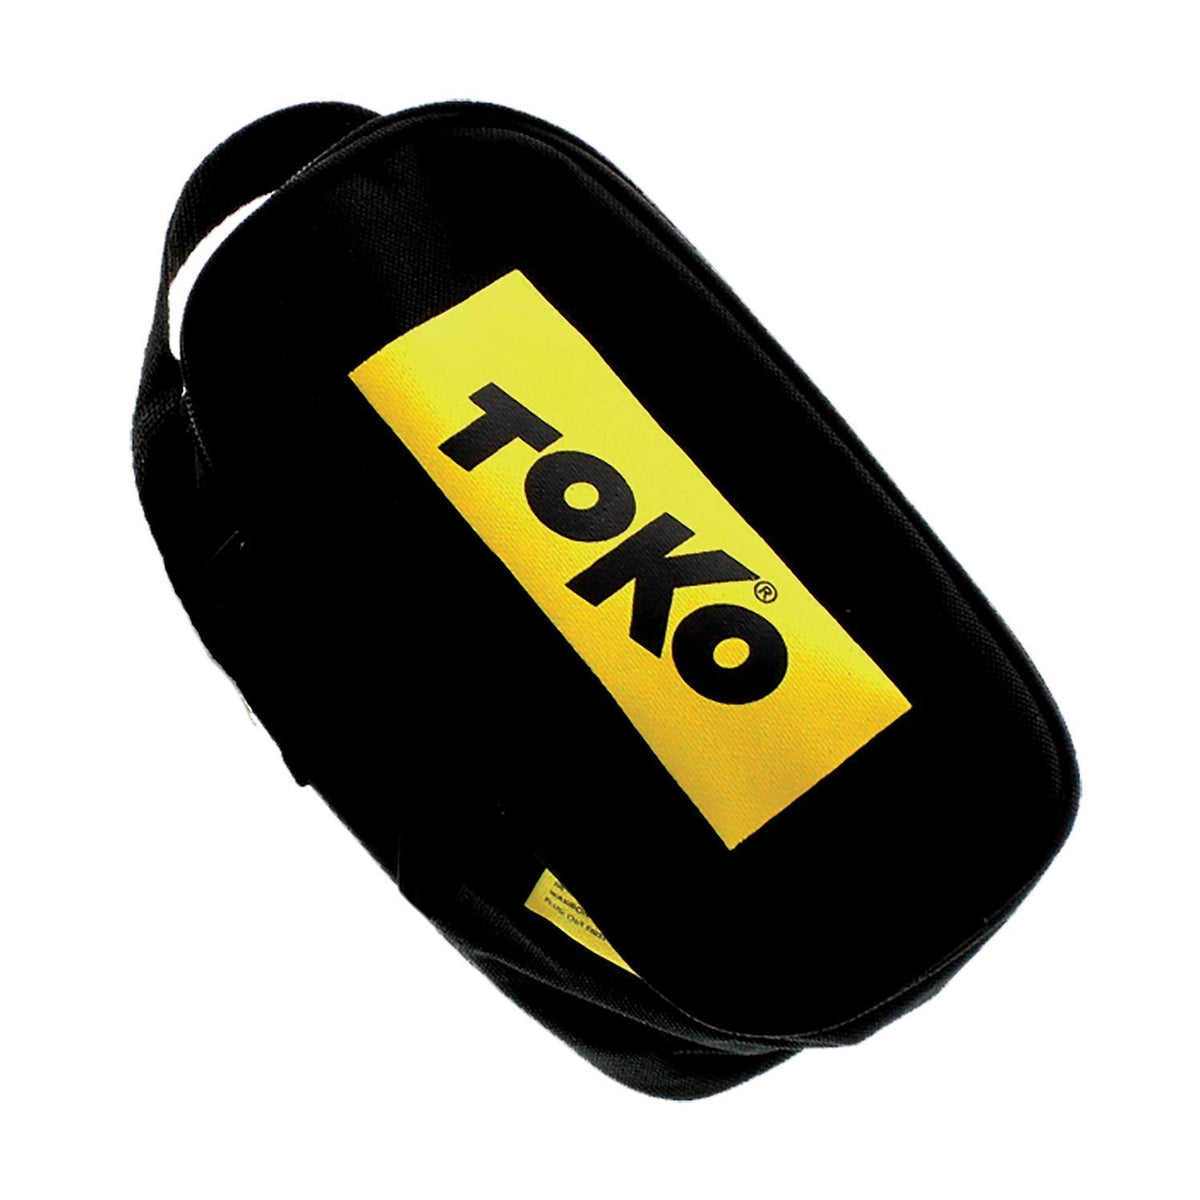 Toko Waxing Tools Toko T14 1200W Digital Ski & Snowboard Wax Iron UK Plug with Storage Bag